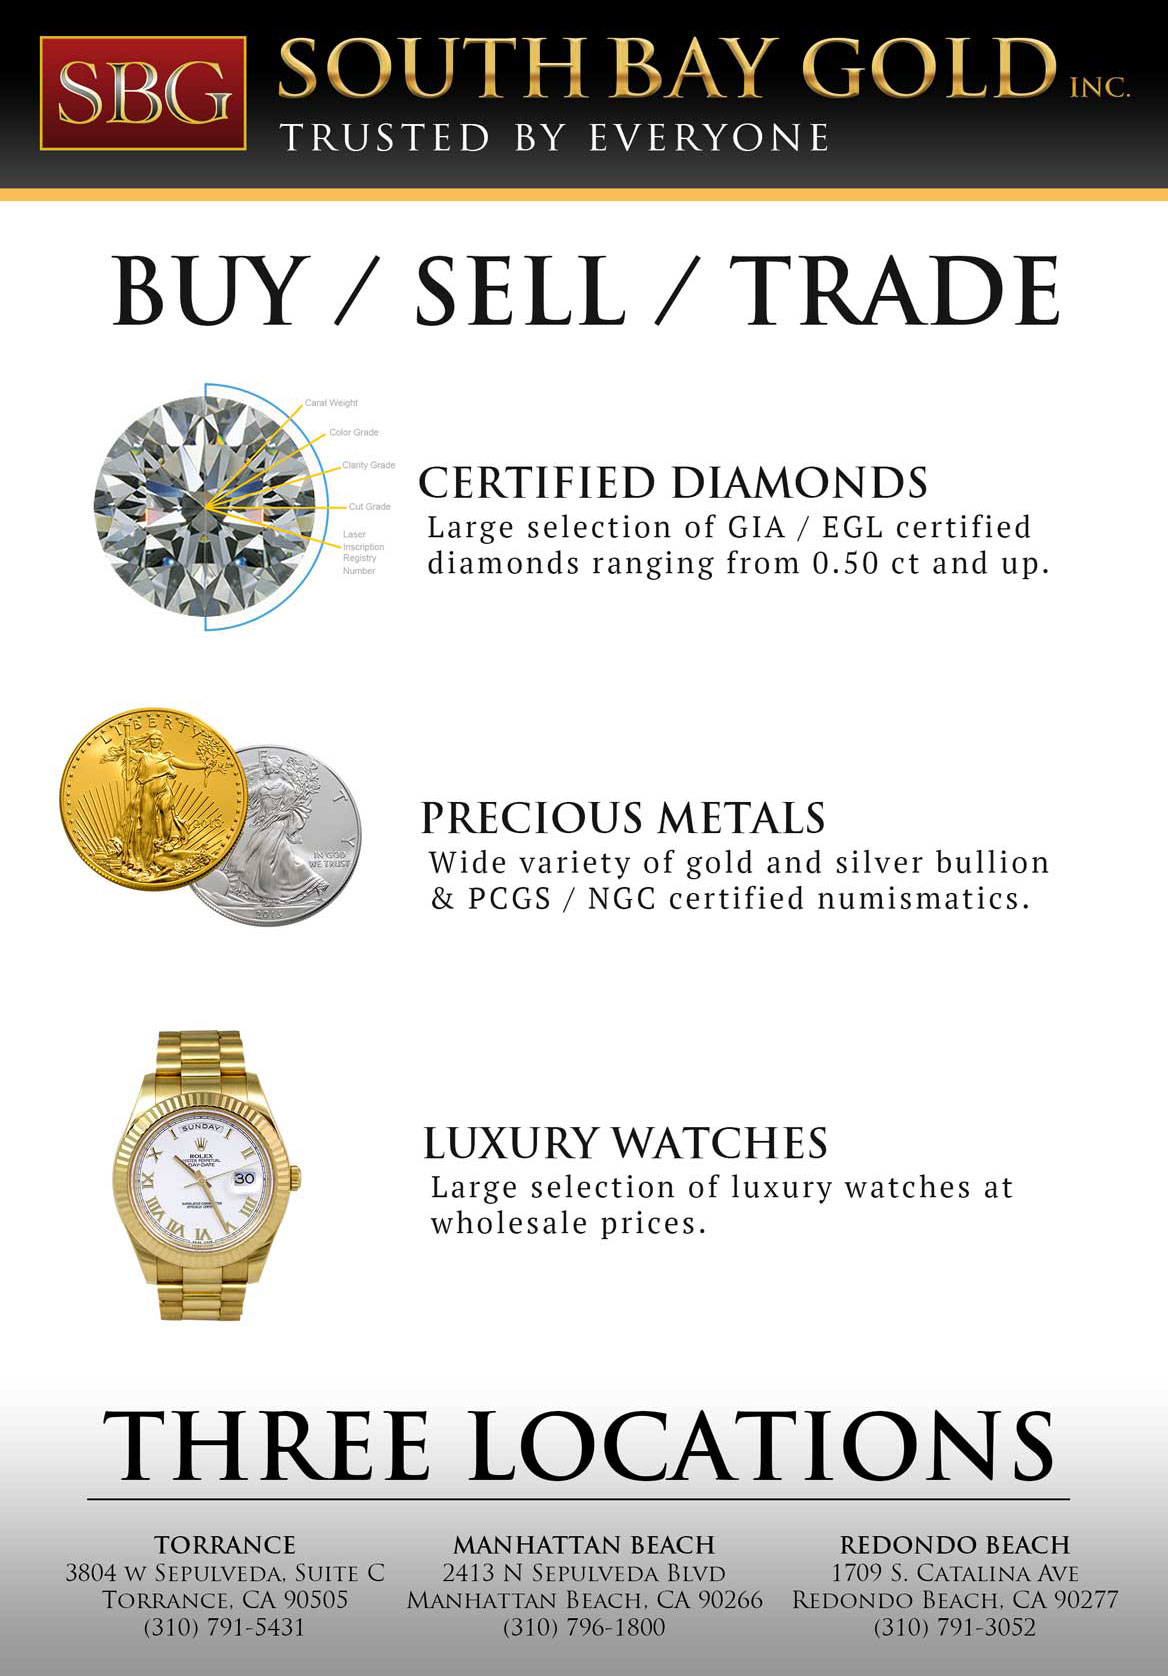 Coupon-For-Selling-Gold-Best-Buys-Guide-South-Bay-Gold-1